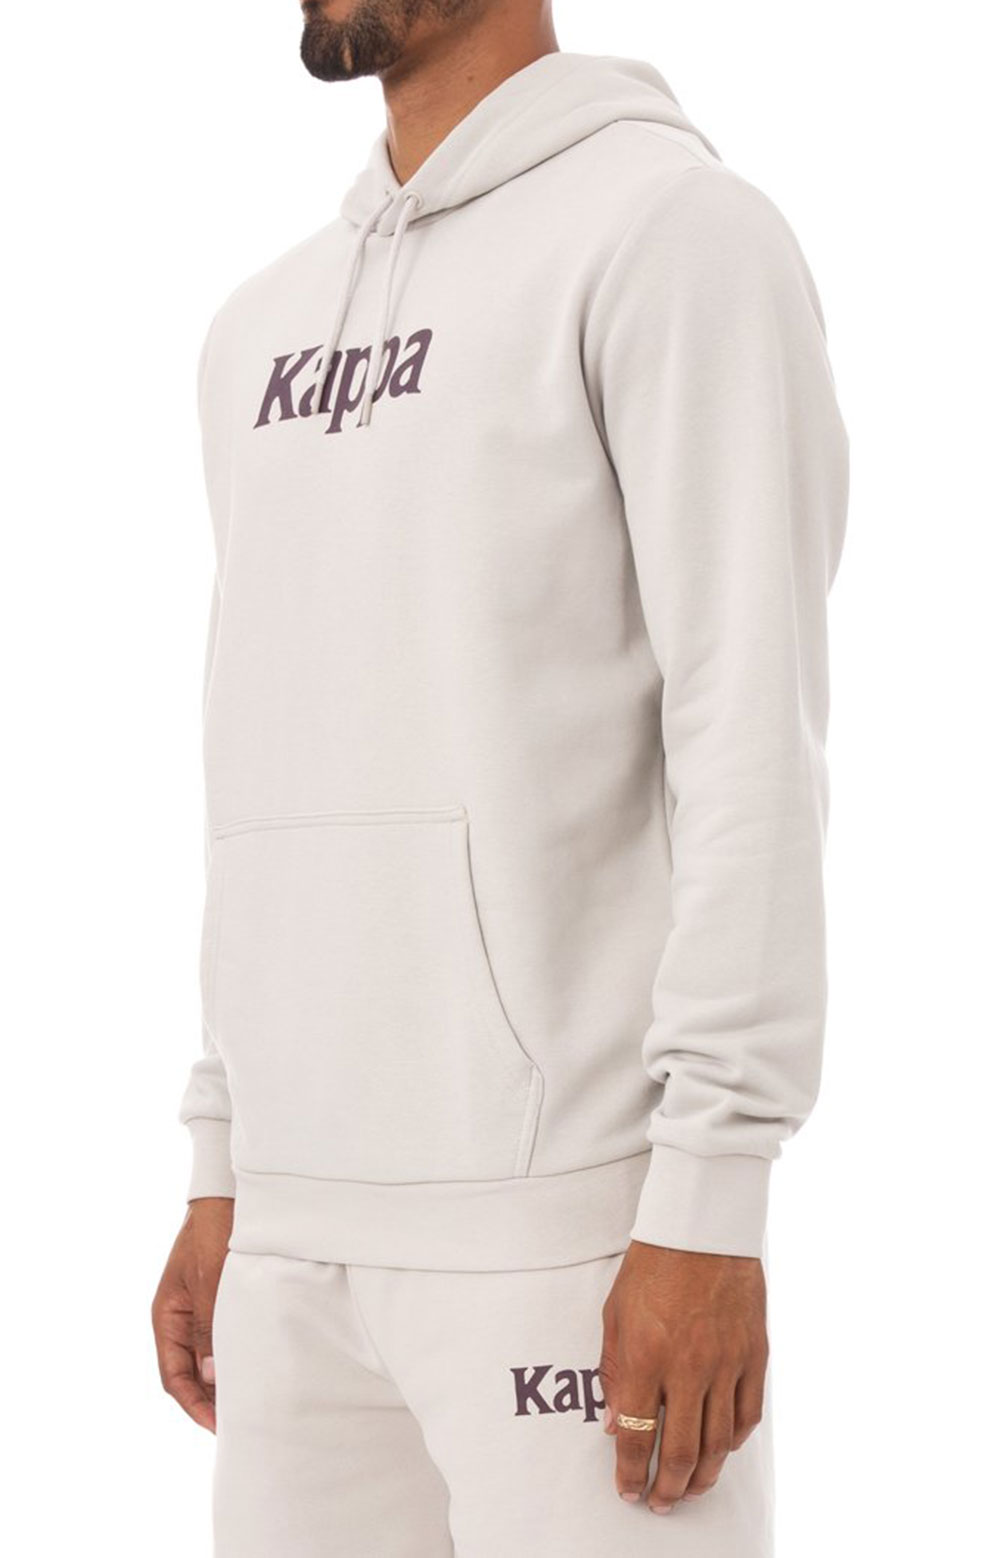 Authentic Haris Pullover Hoodie - Grey Silver 2